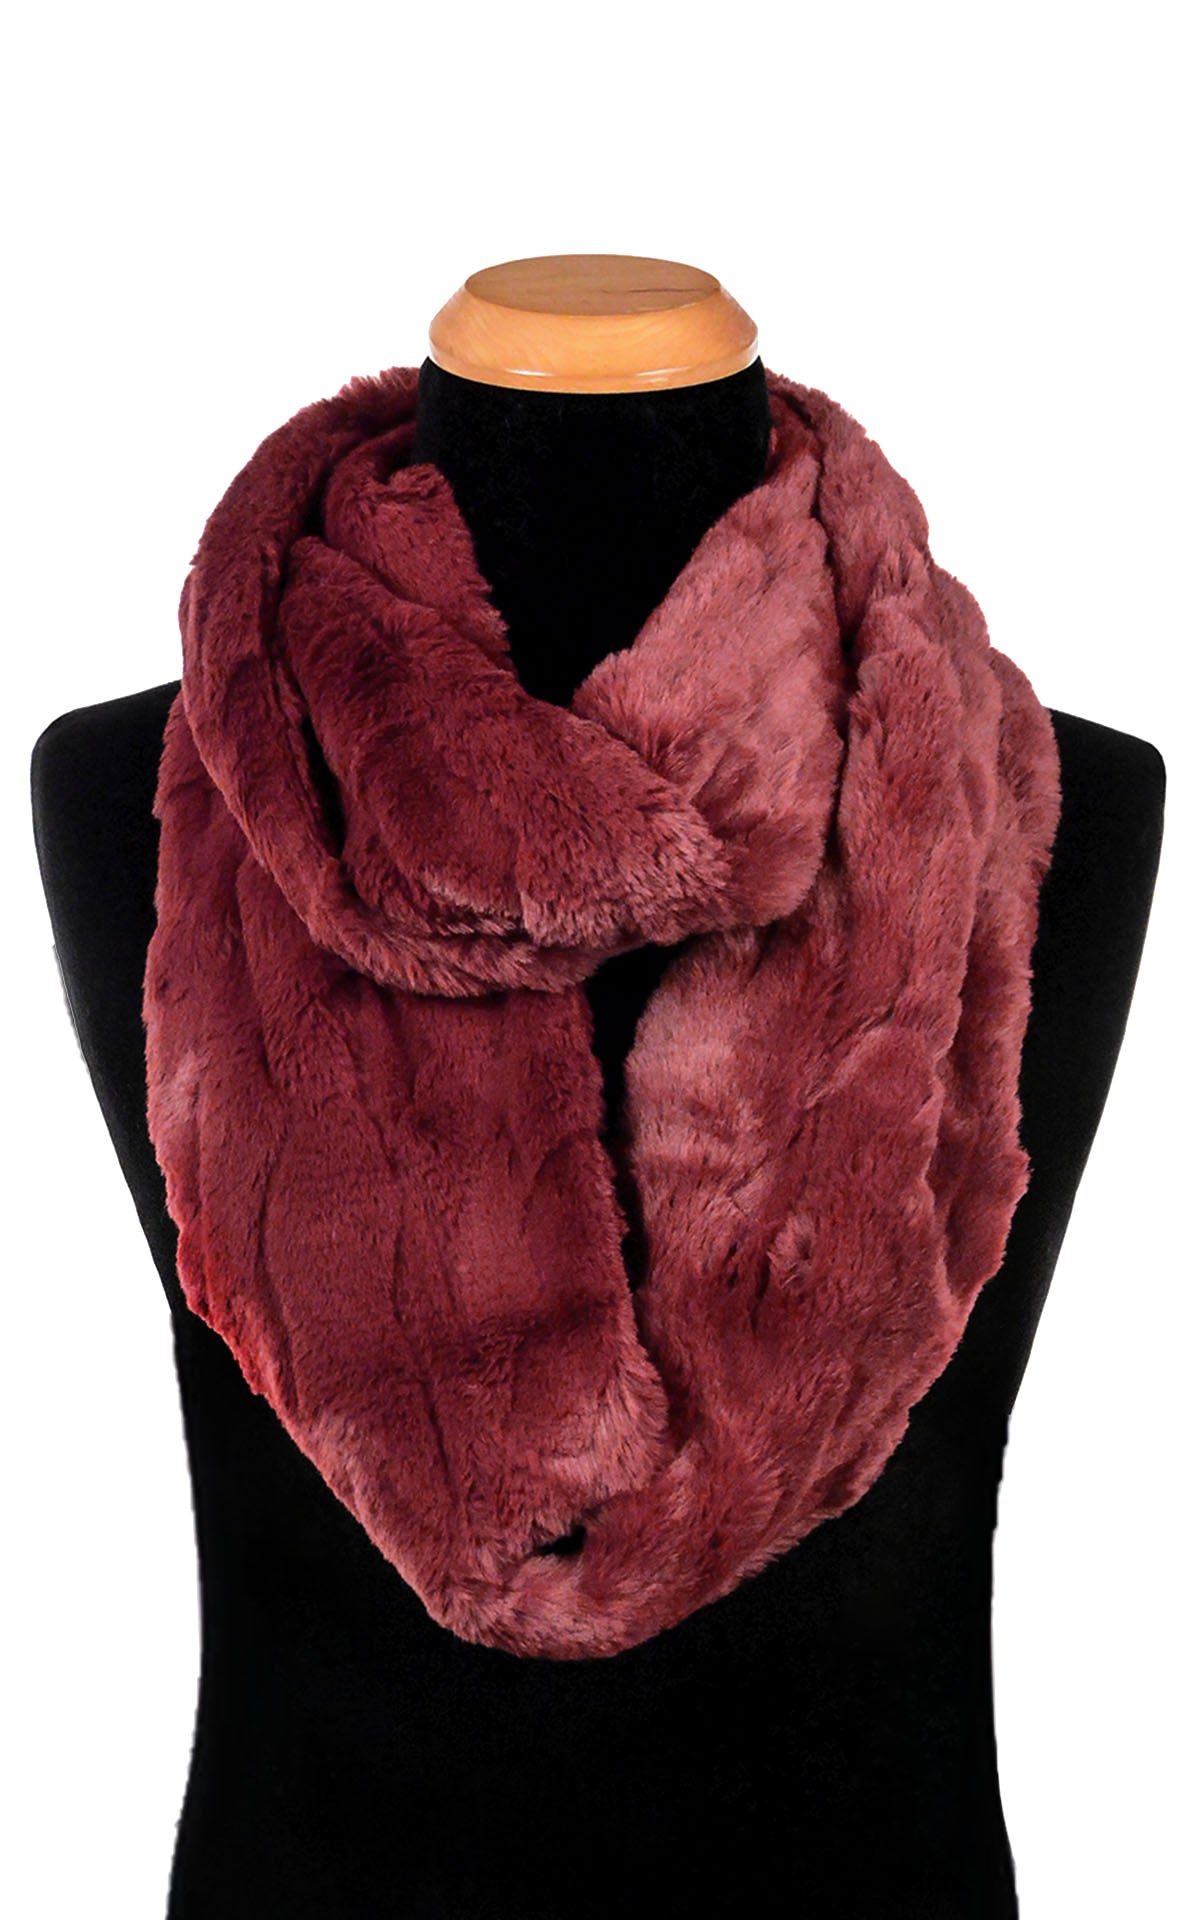 Men's Infinity Scarf - Luxury Faux Fur In Cranberry Creek (Limited Availability)